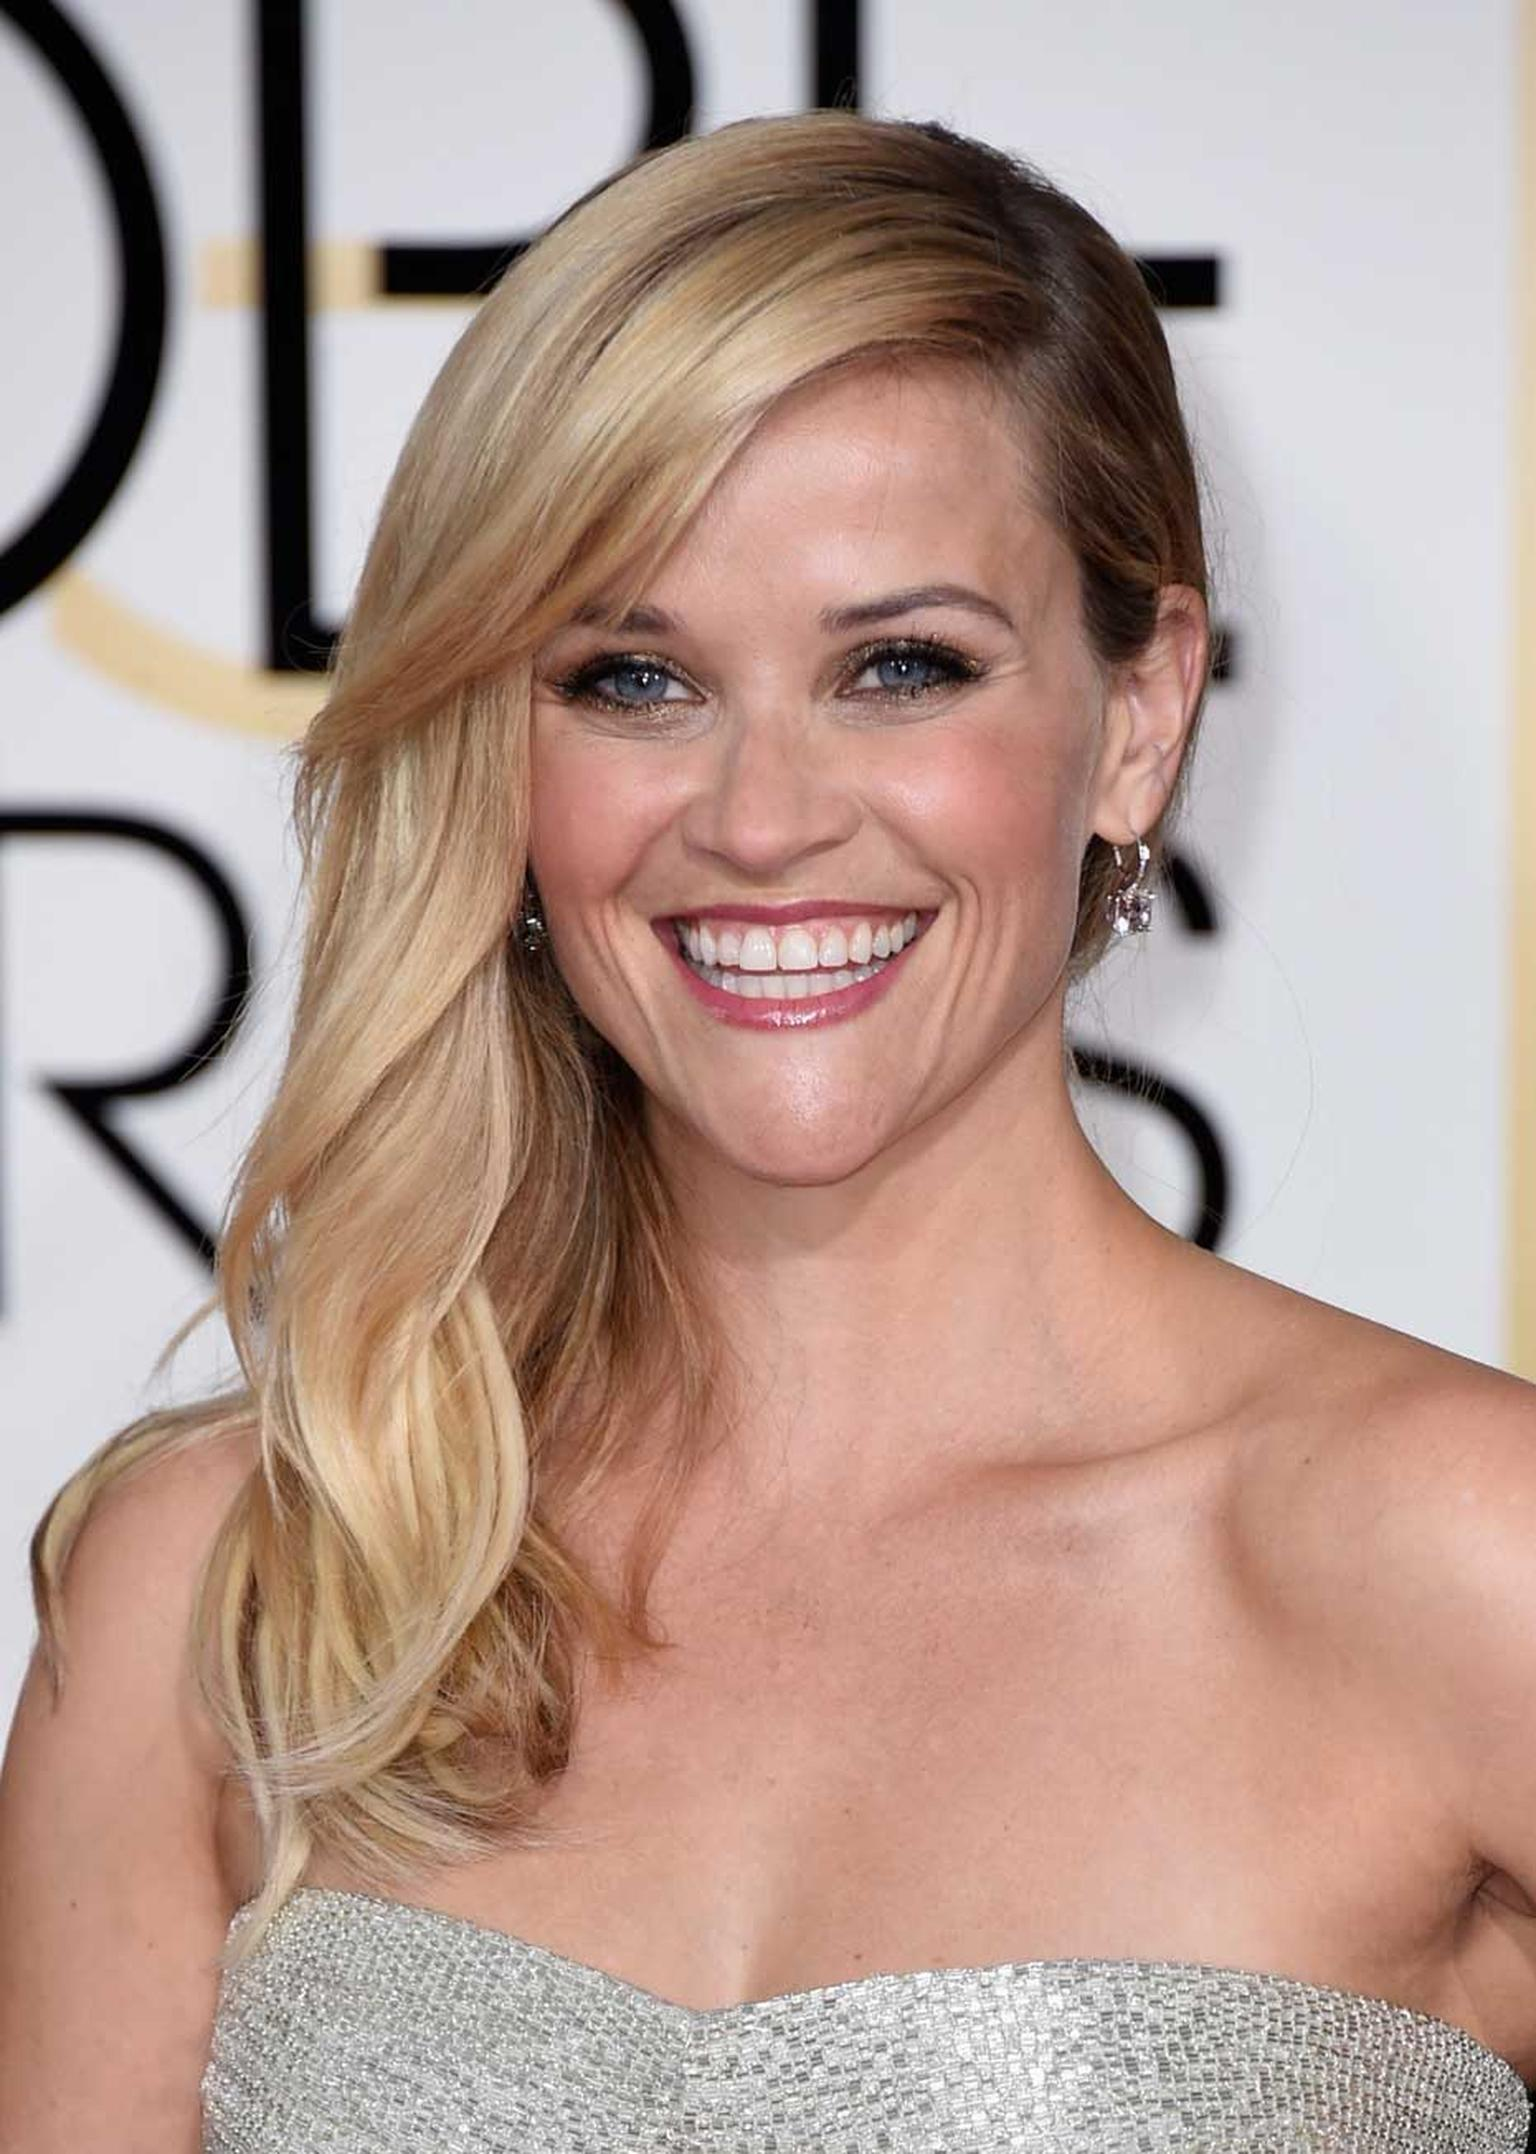 Reese Witherspoon in platinum and diamond earrings and ring from Tiffany & Co. at the 2015 Golden Globes.